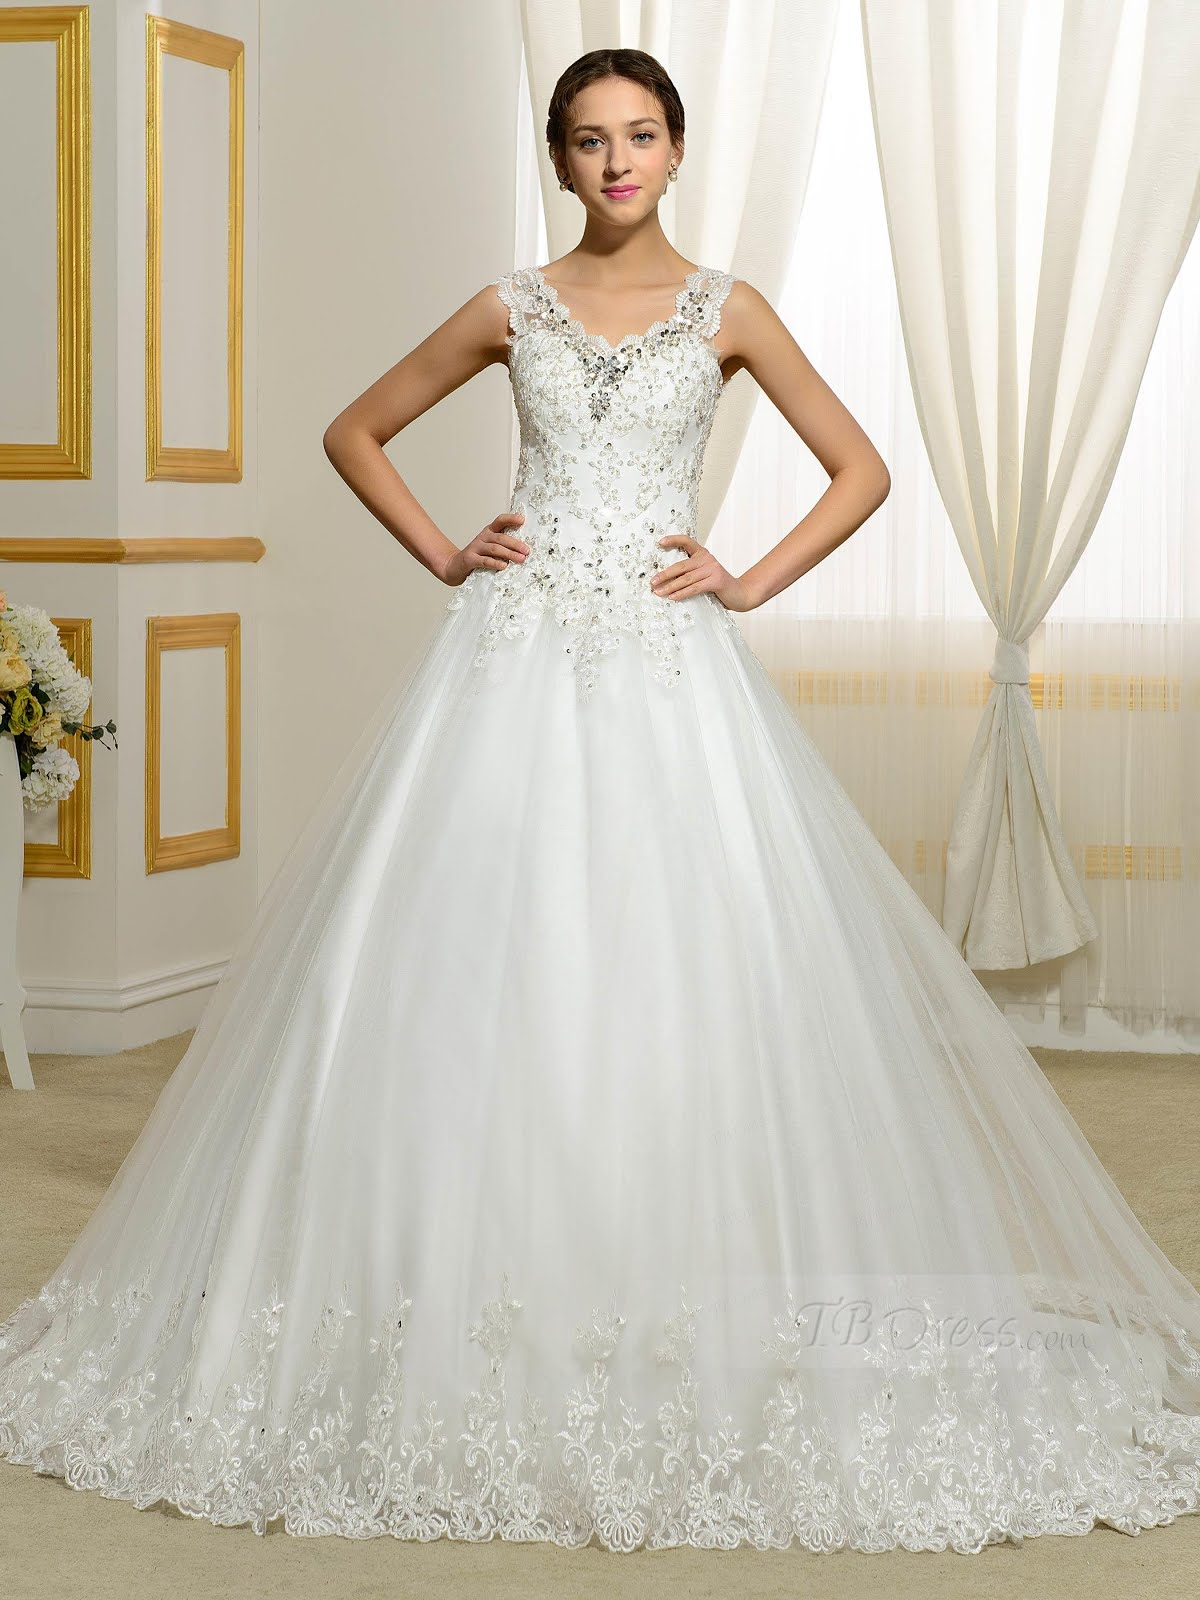 Beautiful ball gown wedding dresses design for Elegant ball gown wedding dresses